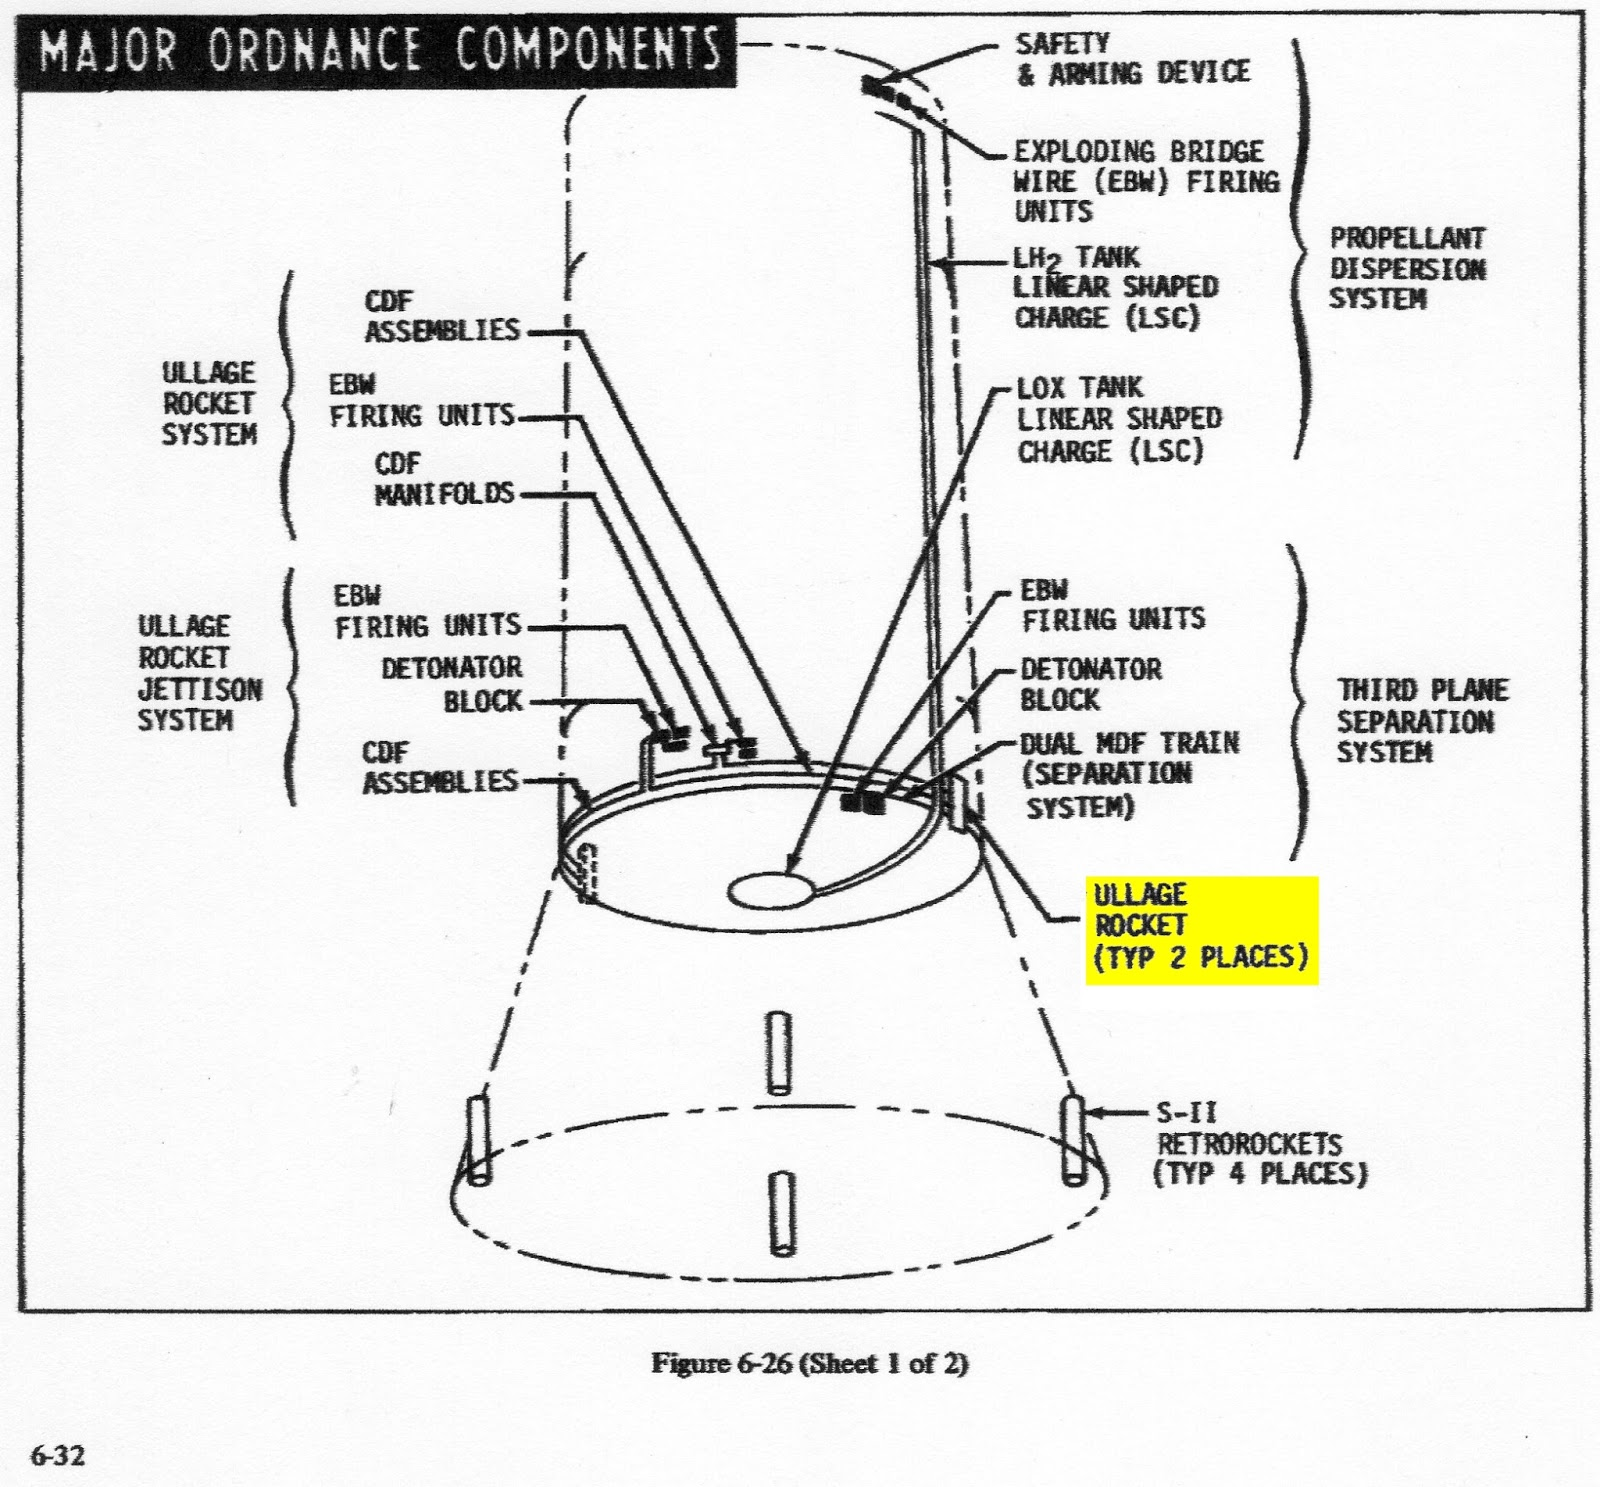 Growing Up With Spaceflight July 2017 Mdf Wiring Diagram From Another Apollo Saturn V Document We Have This Graphic Intended To Represent All Vehicles Ordnance Components For The 500 Series S Ivb